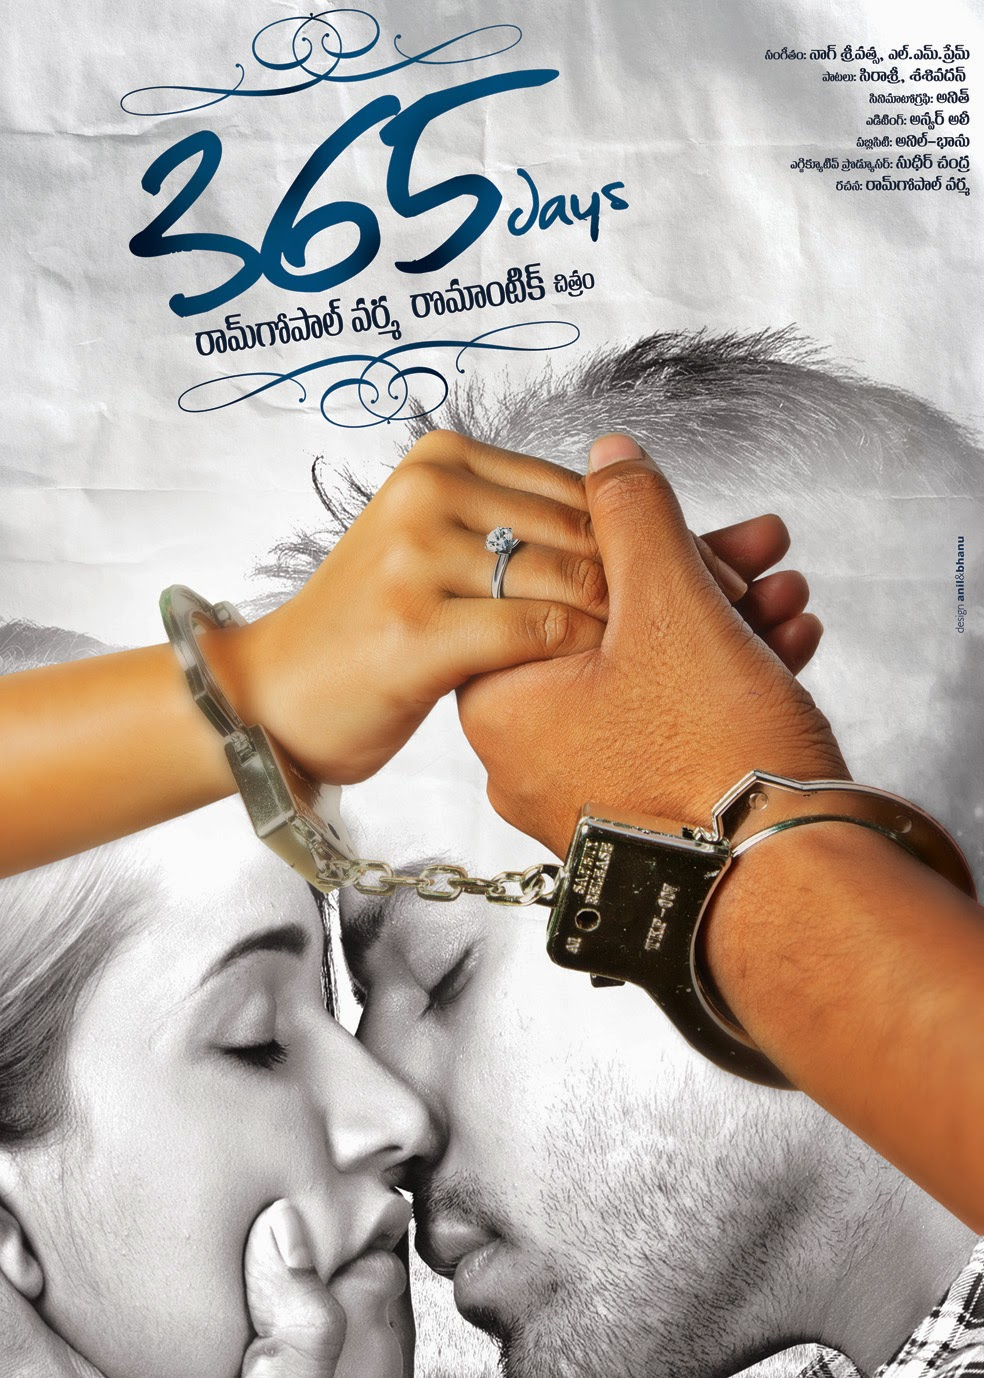 365 Days 2015 Movie First Look HD Wallpapers Blugaacom 984x1378